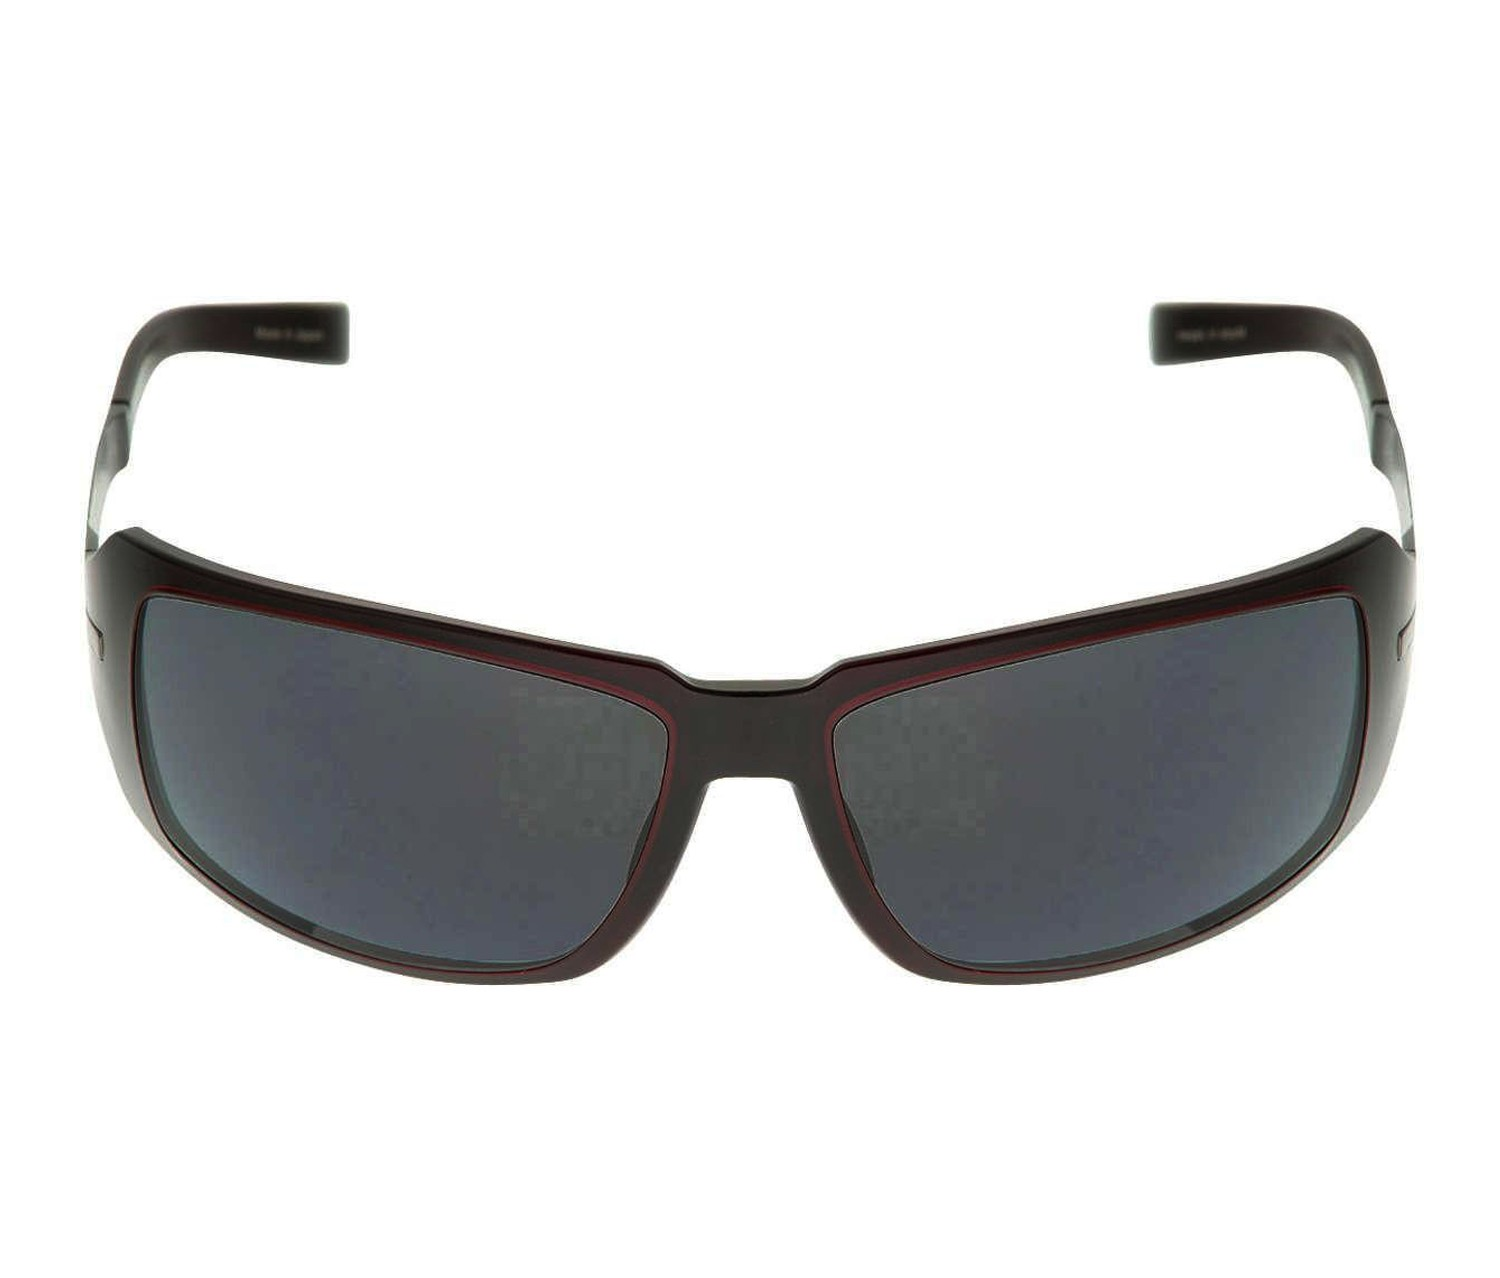 Porsche Design P8513 C 64 17 Sunglasses Brands For Less